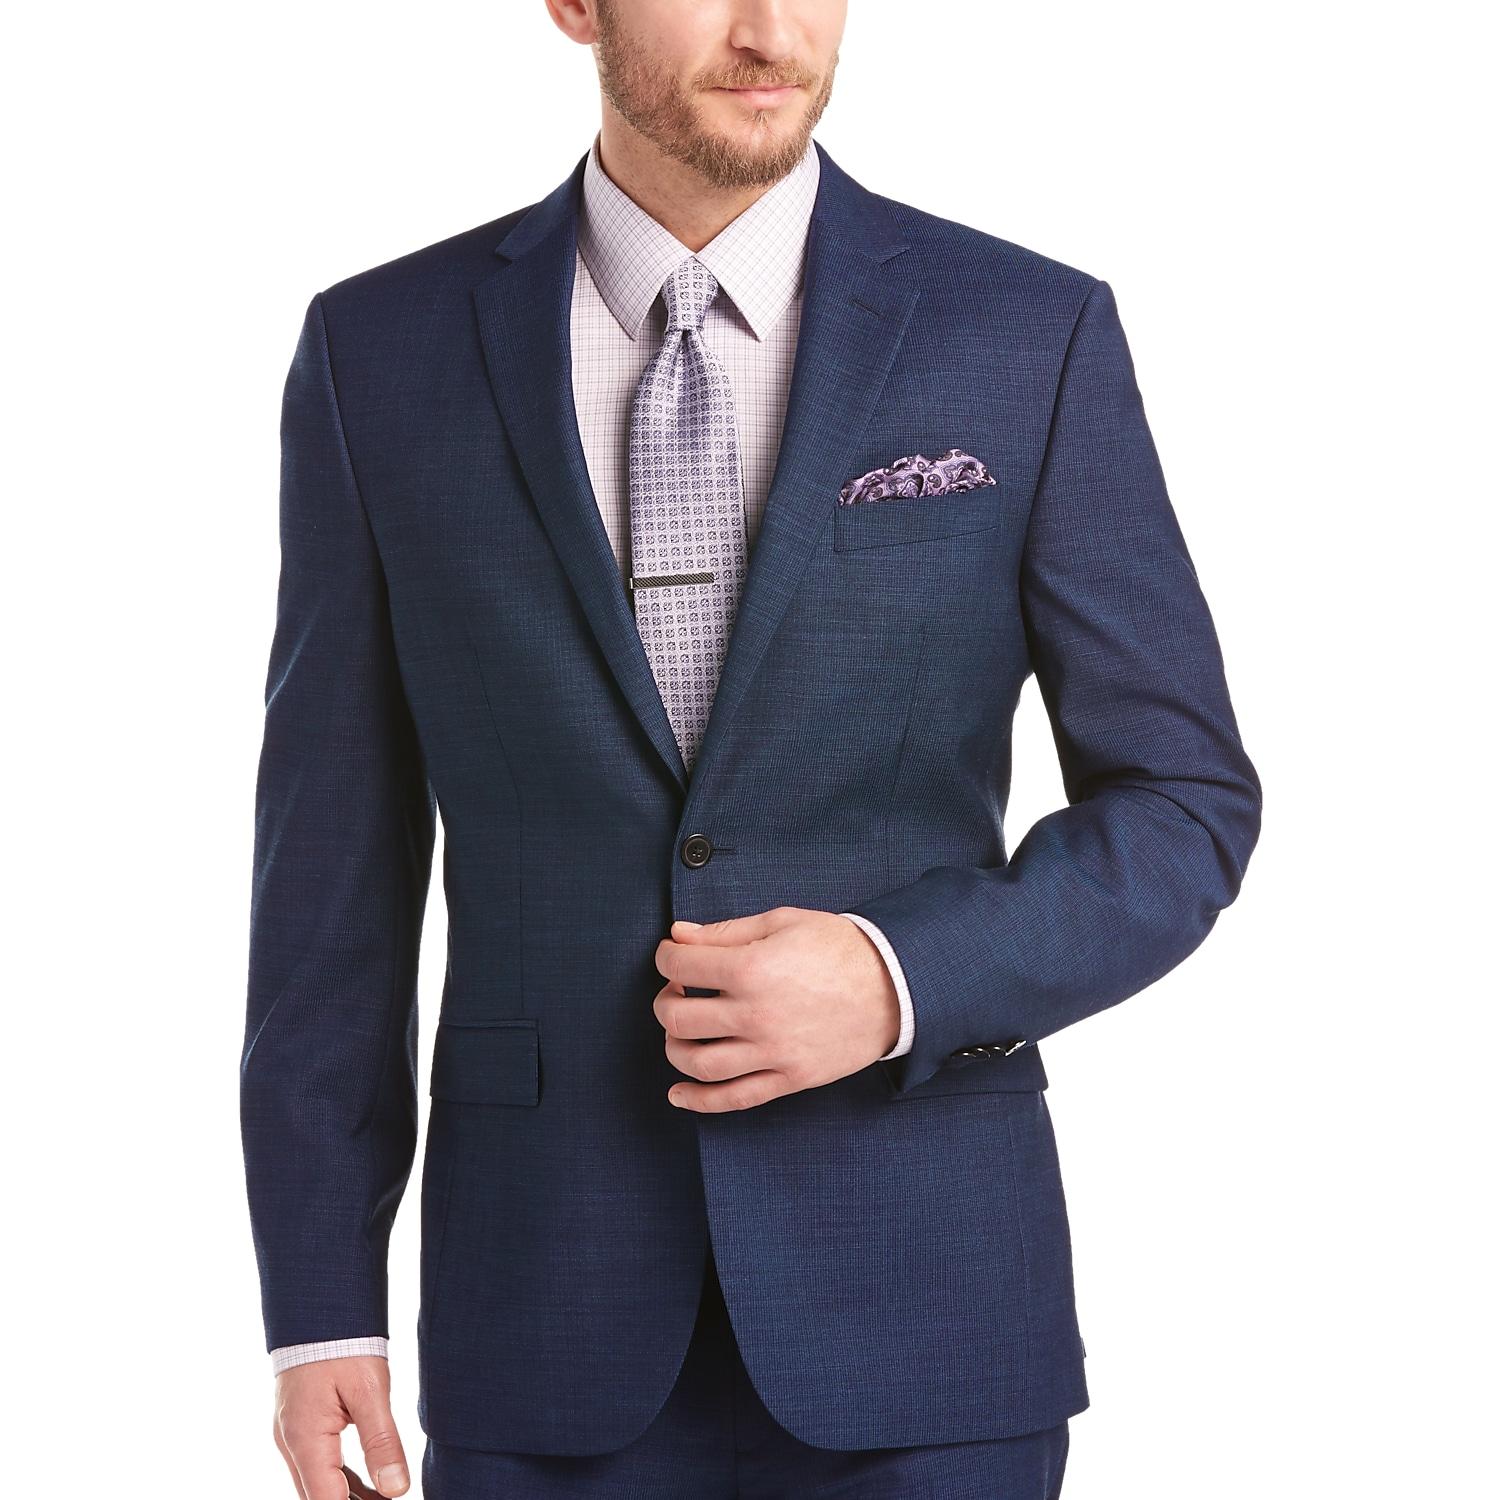 Slim Fit Suits - Skinny Suits for Men | Men's Wearhouse